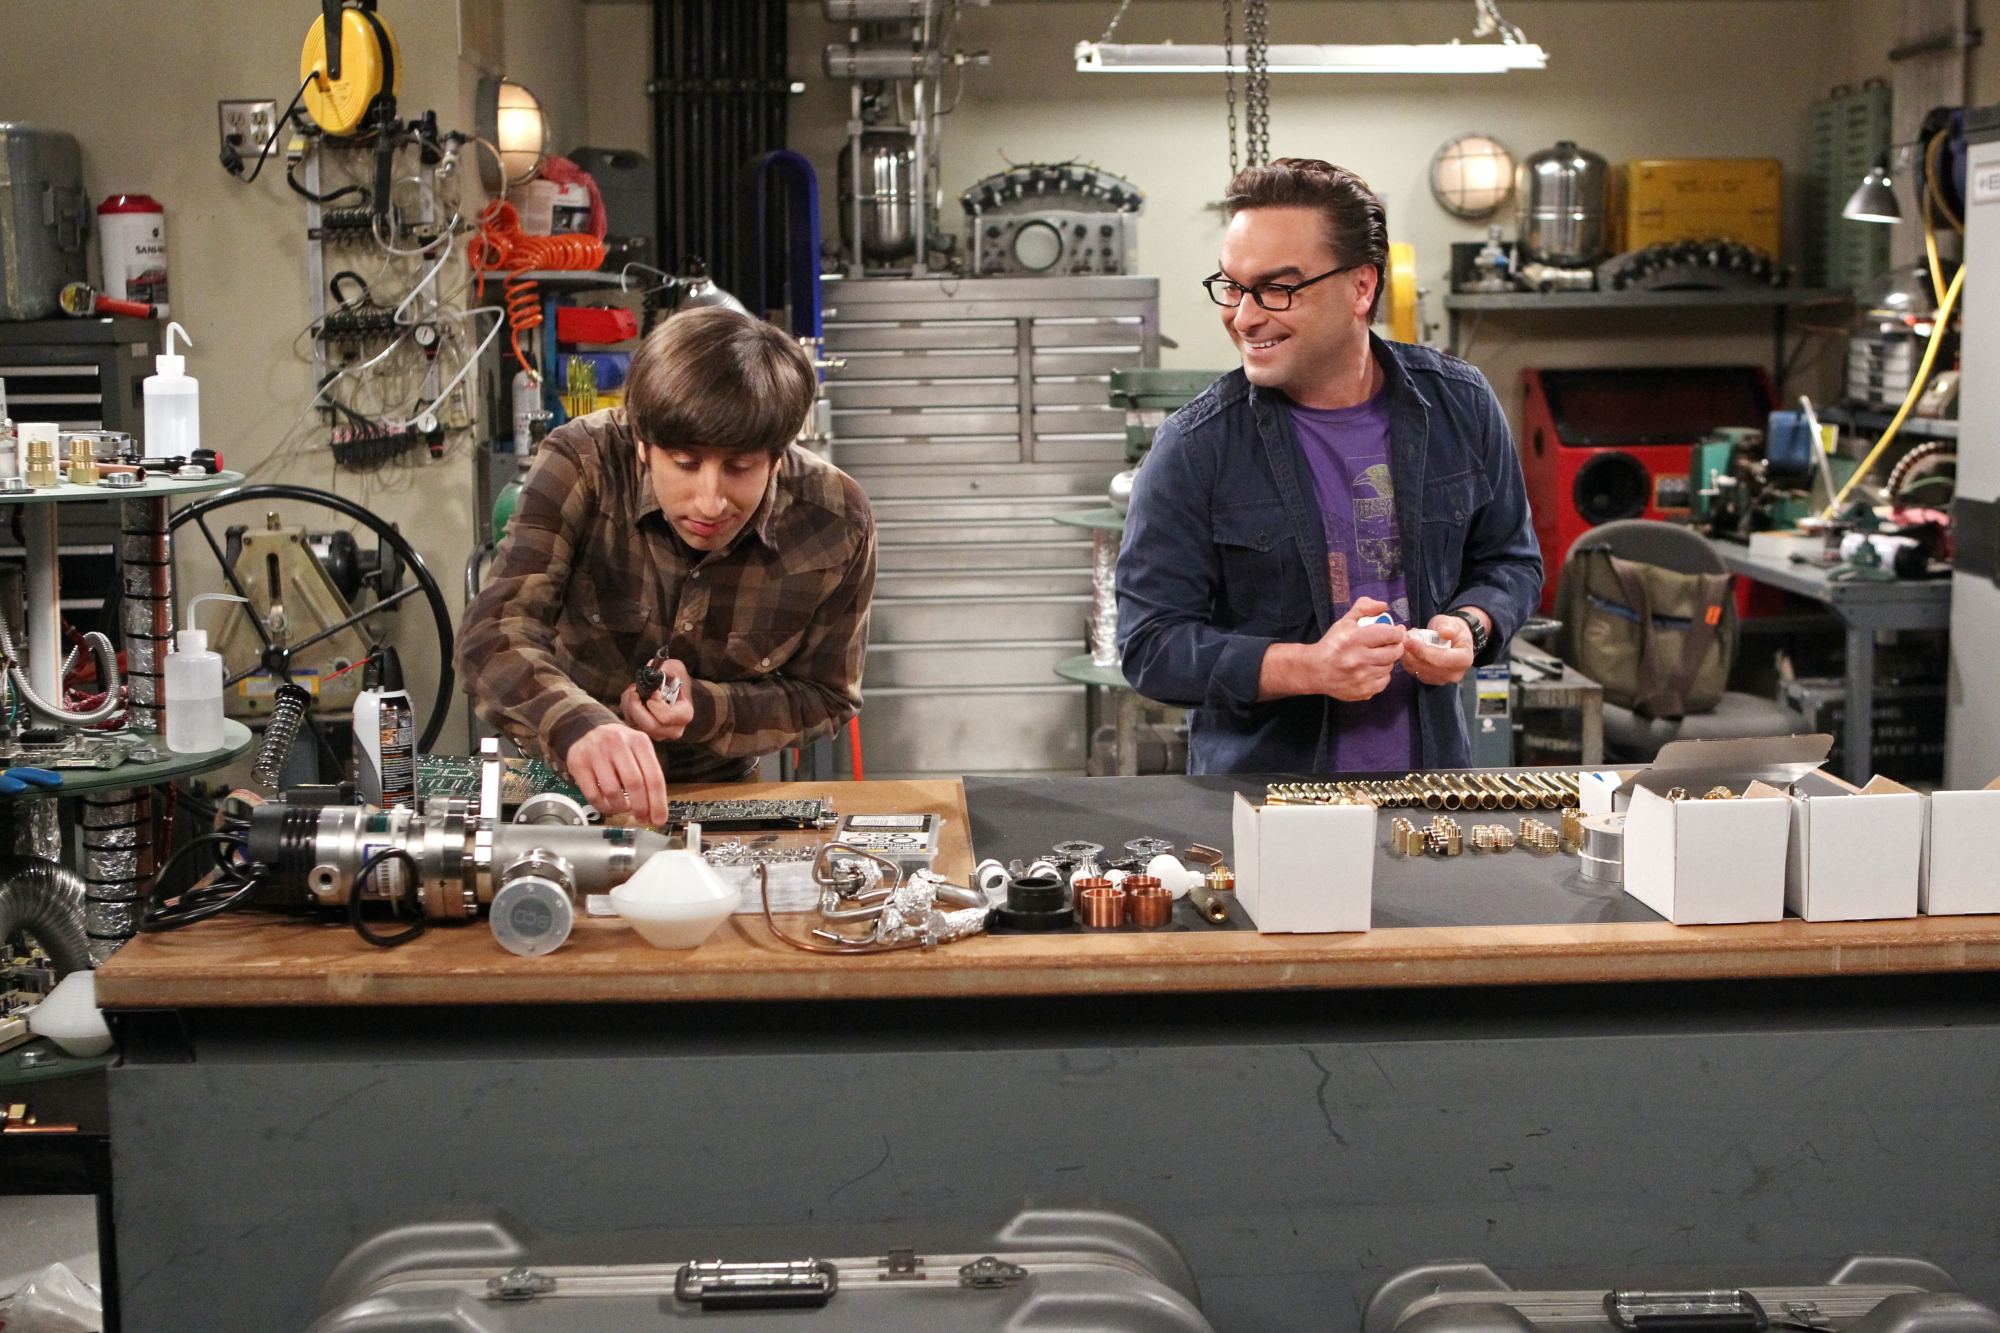 Howard and Leonard work together on a science project.